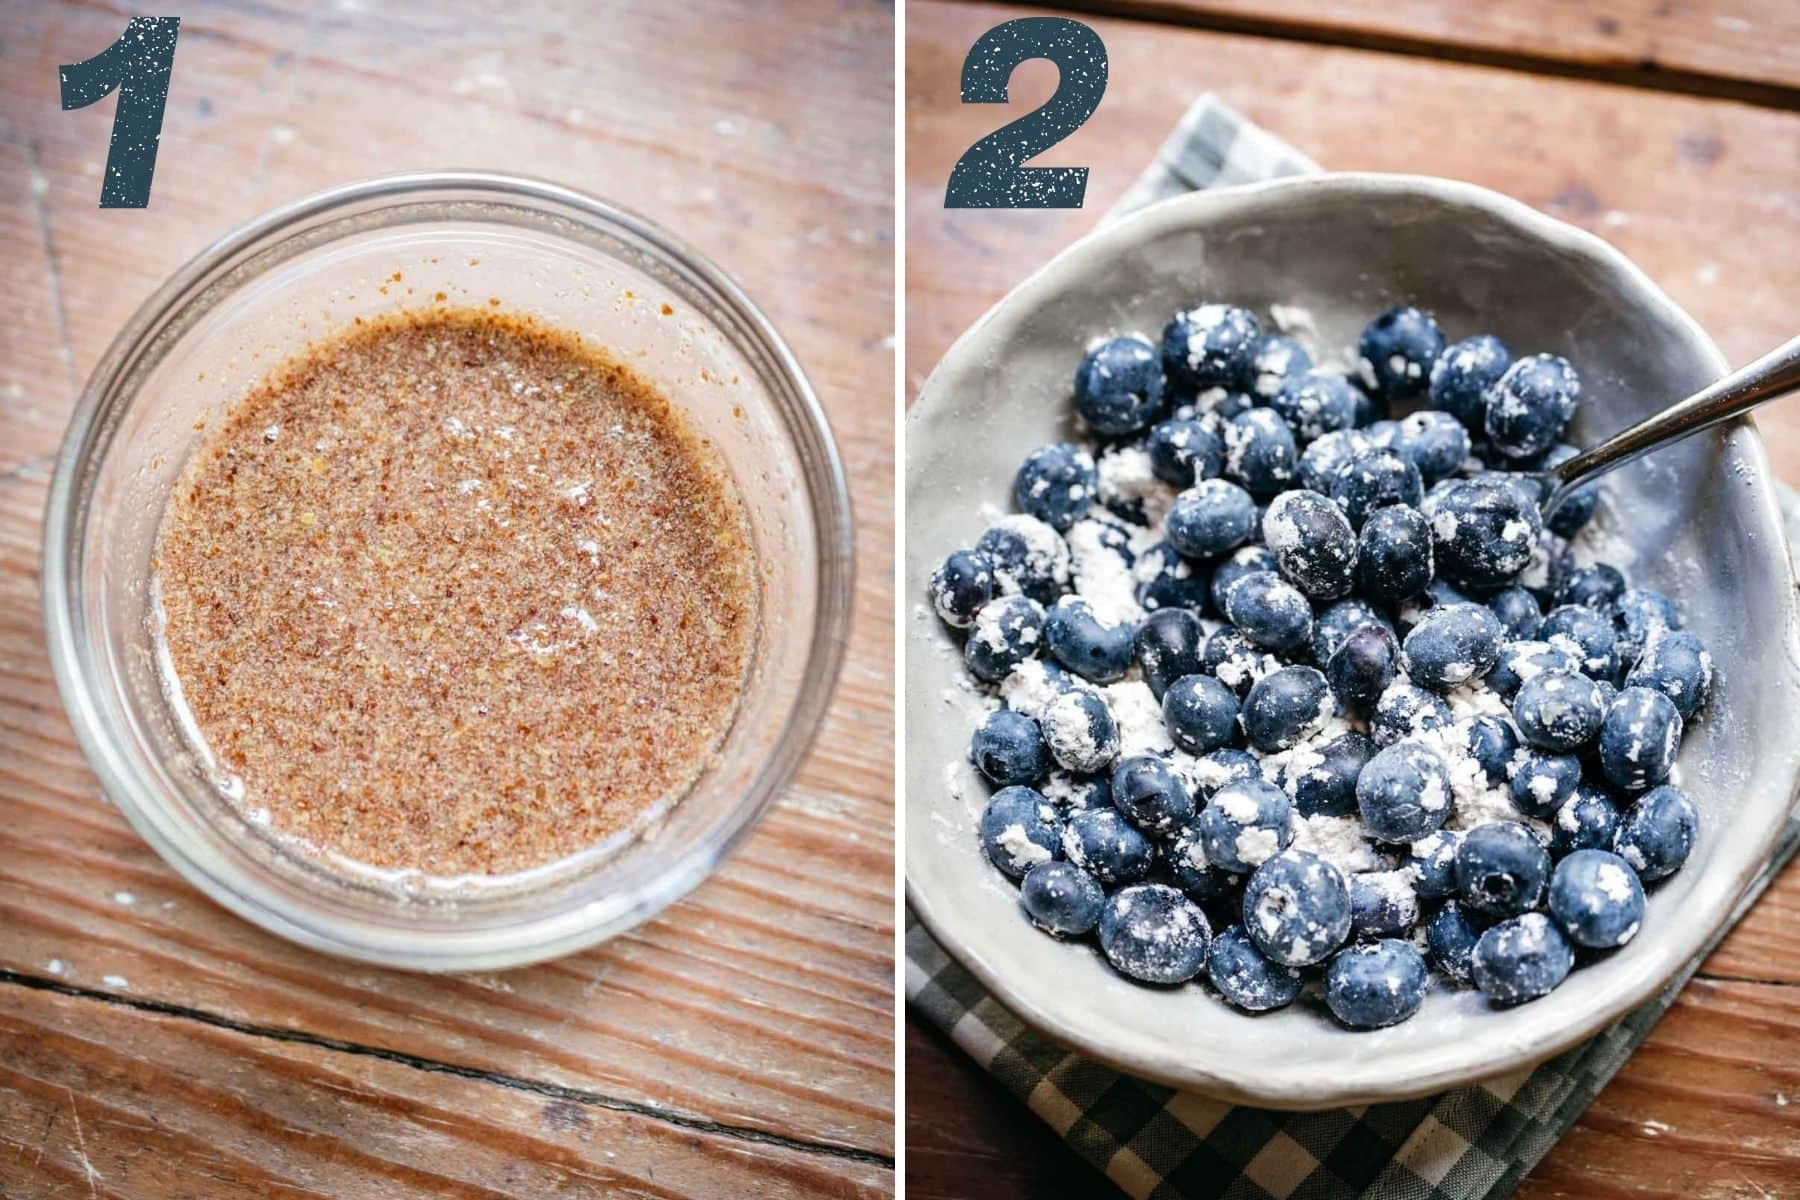 On the left: flax meal stirred with water. On the right: blueberries coated in flour.